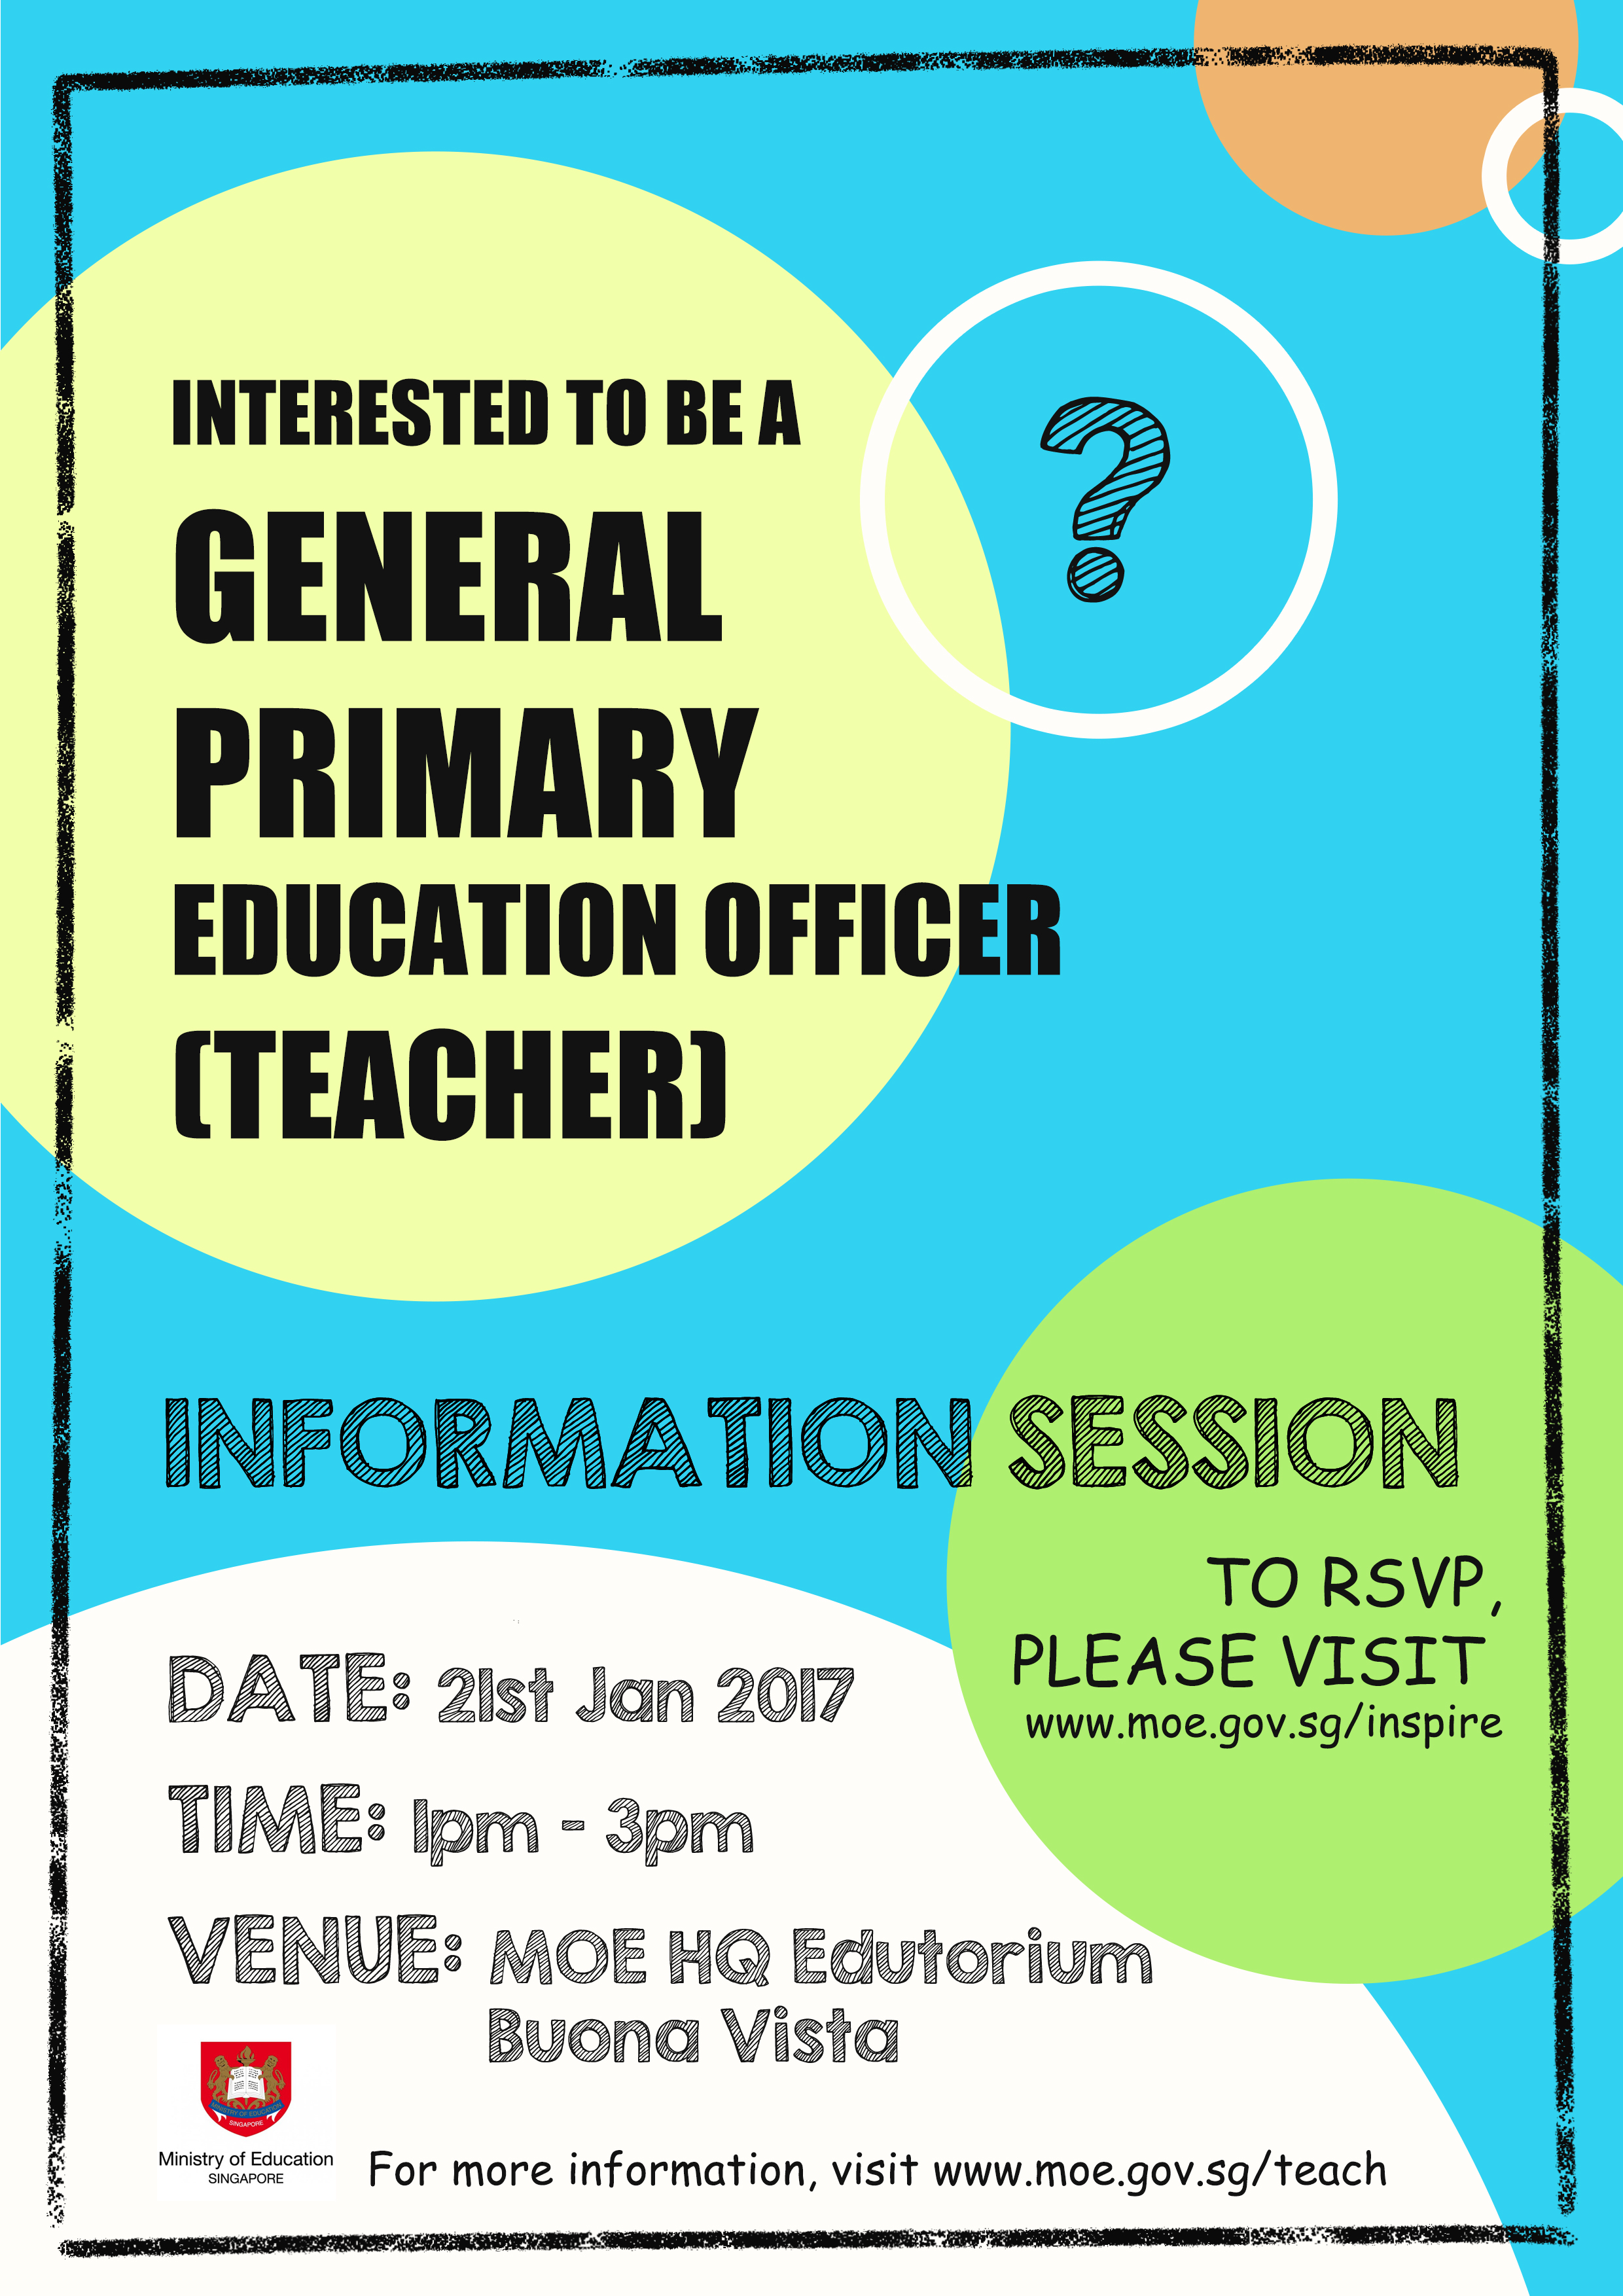 general-pri-edu-officer-edm